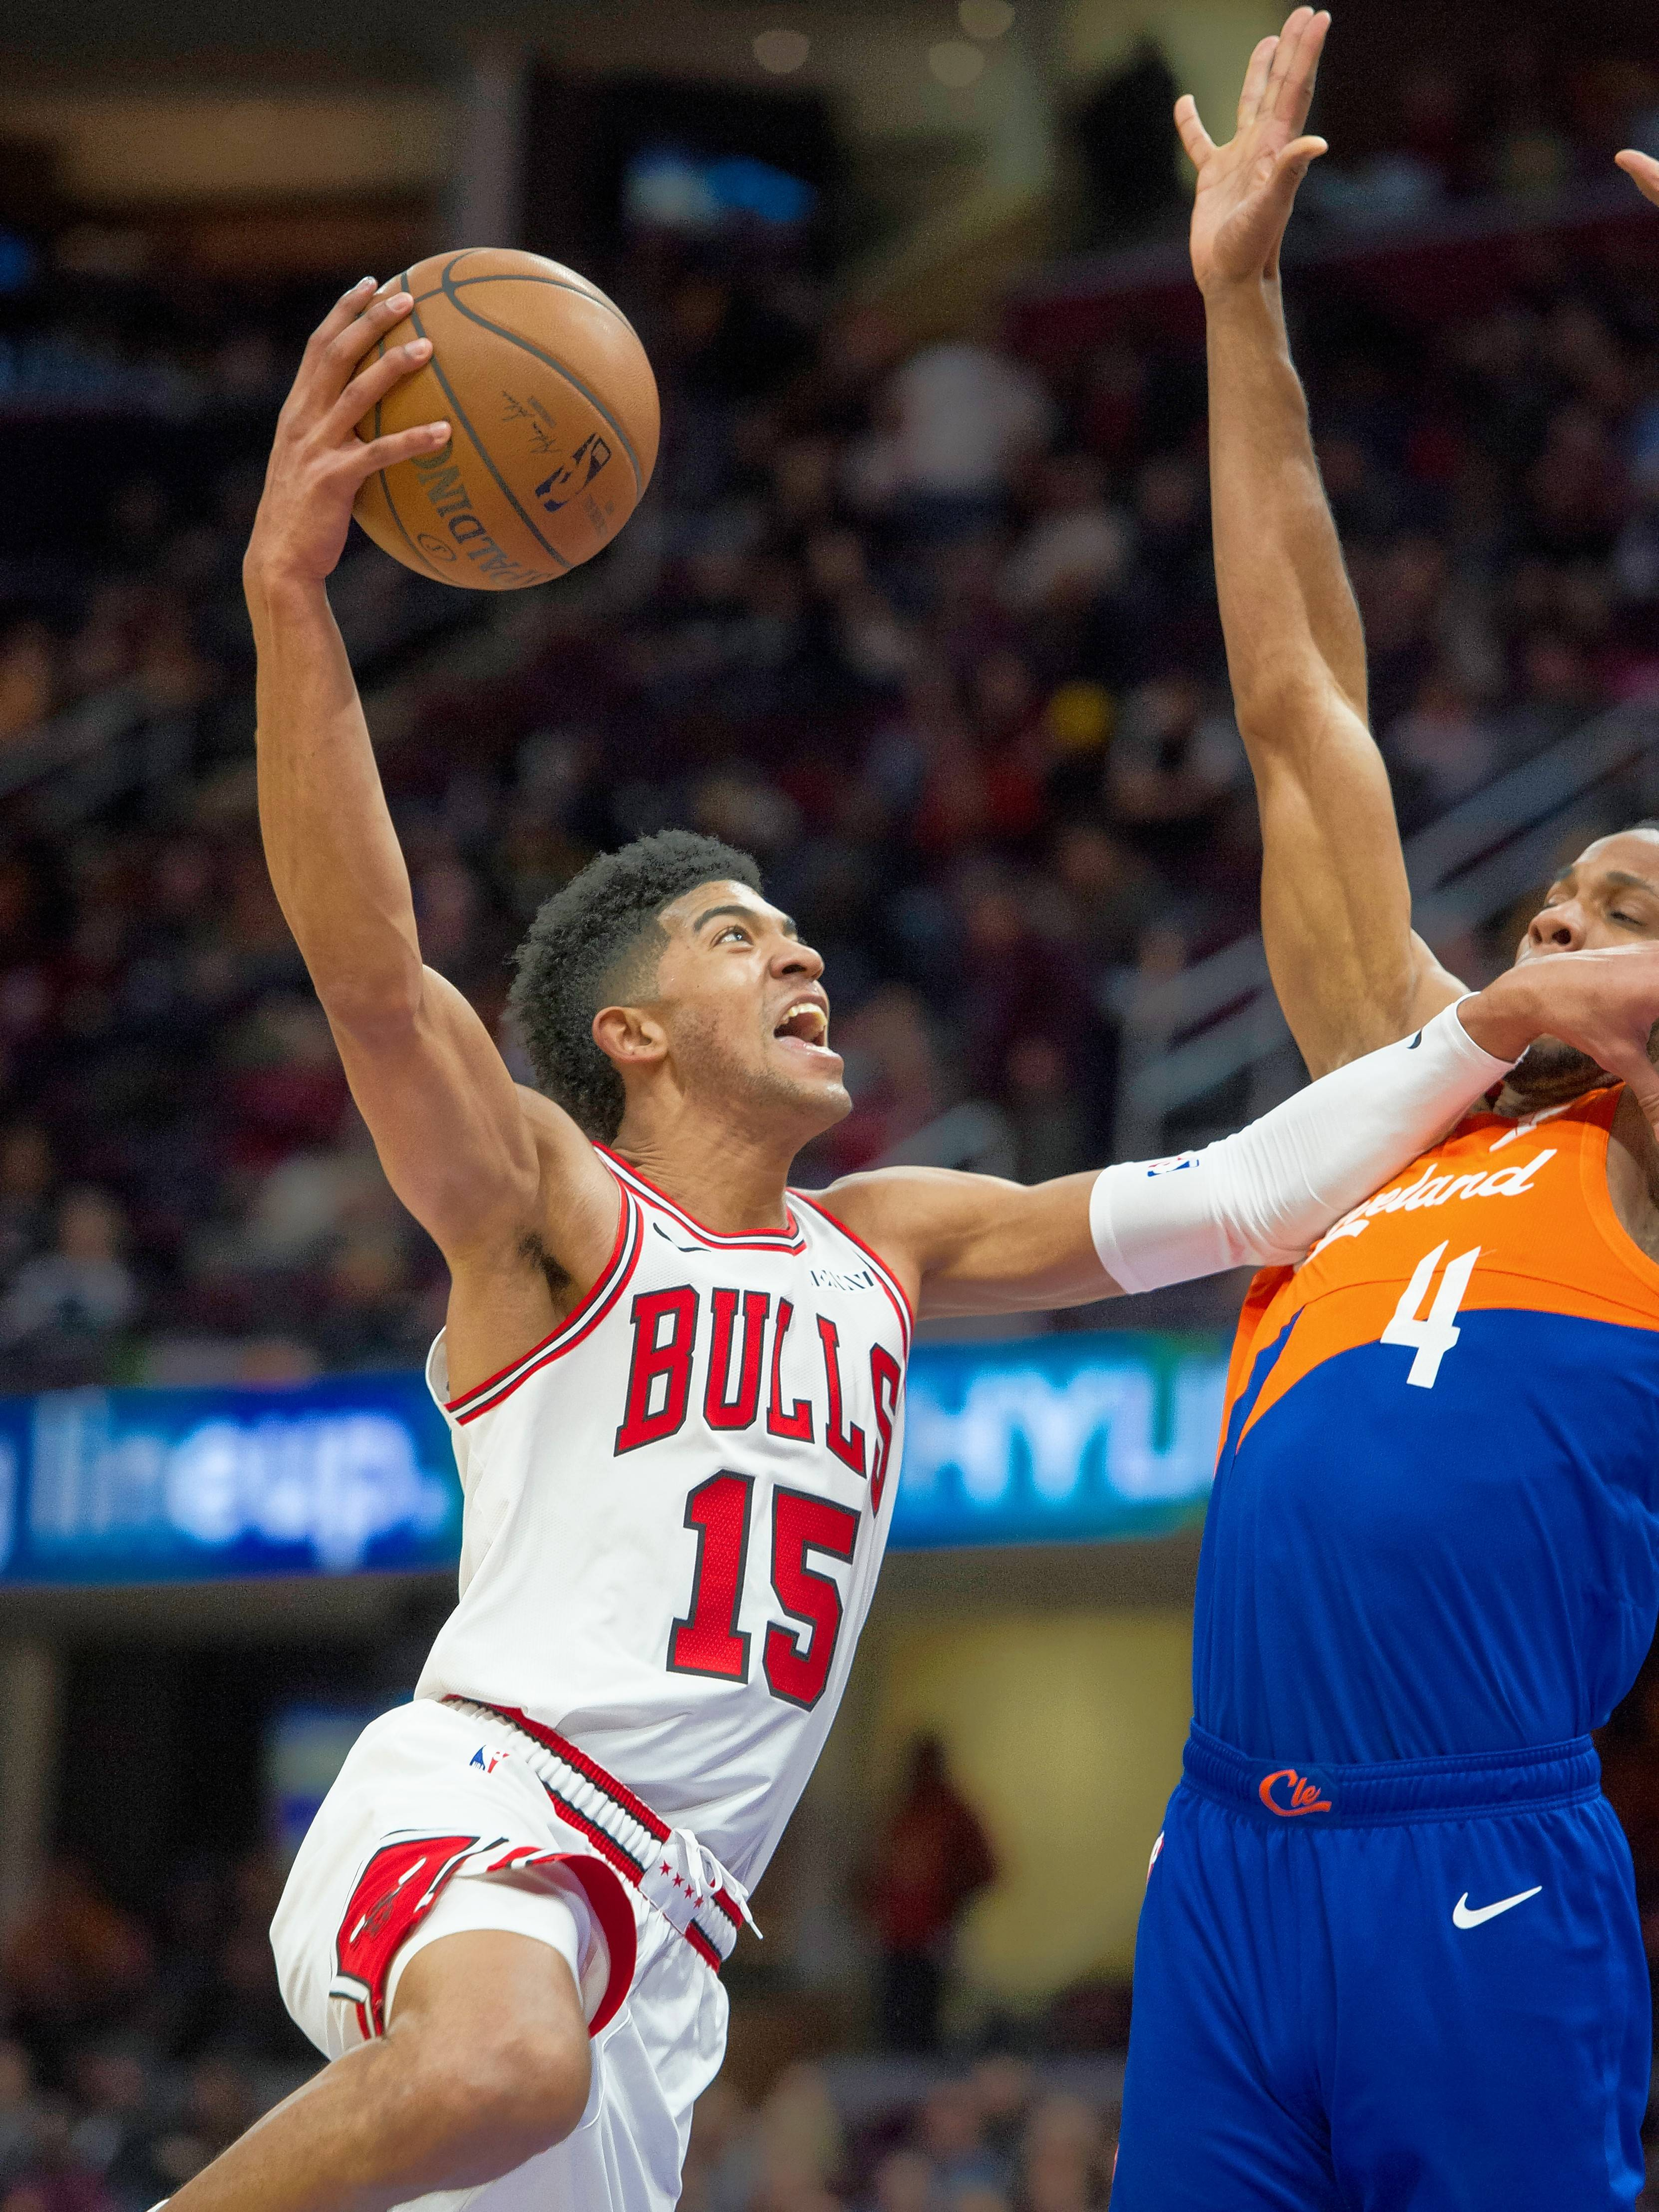 Bulls' lineup gets younger as rookie Hutchison joins starters